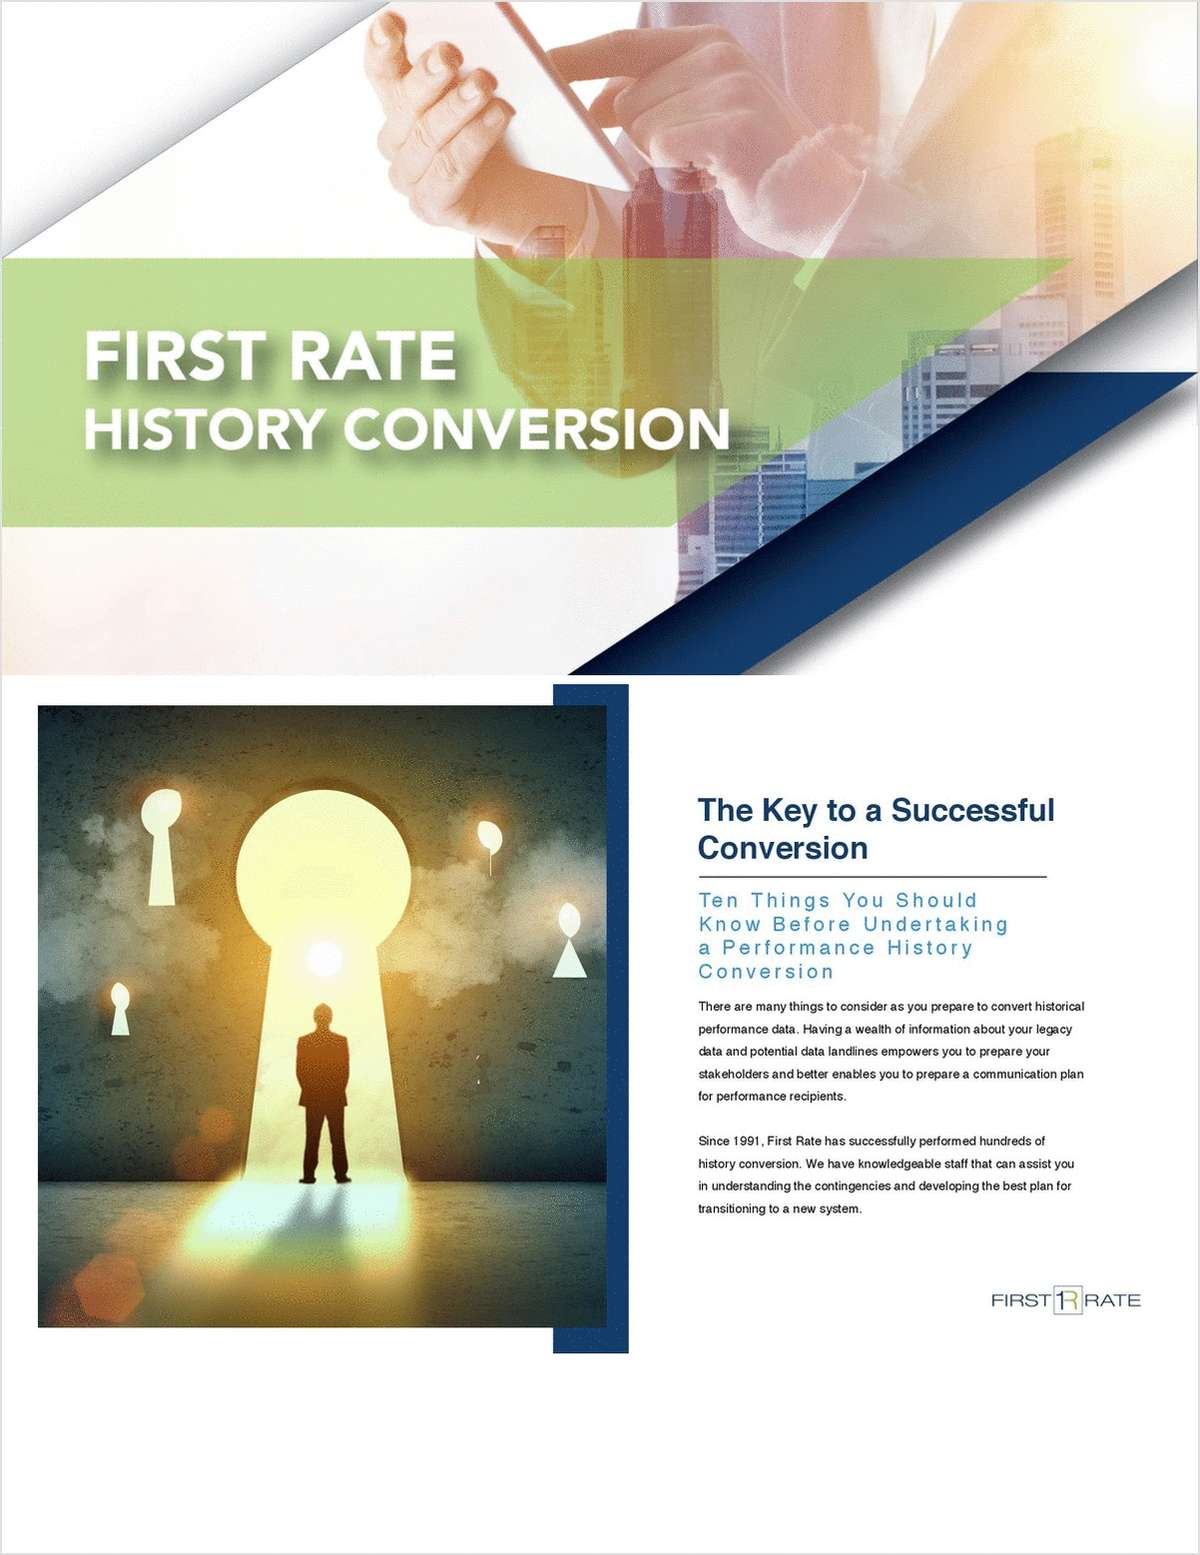 10 Things You Should Know Before Undertaking a Performance History Conversion